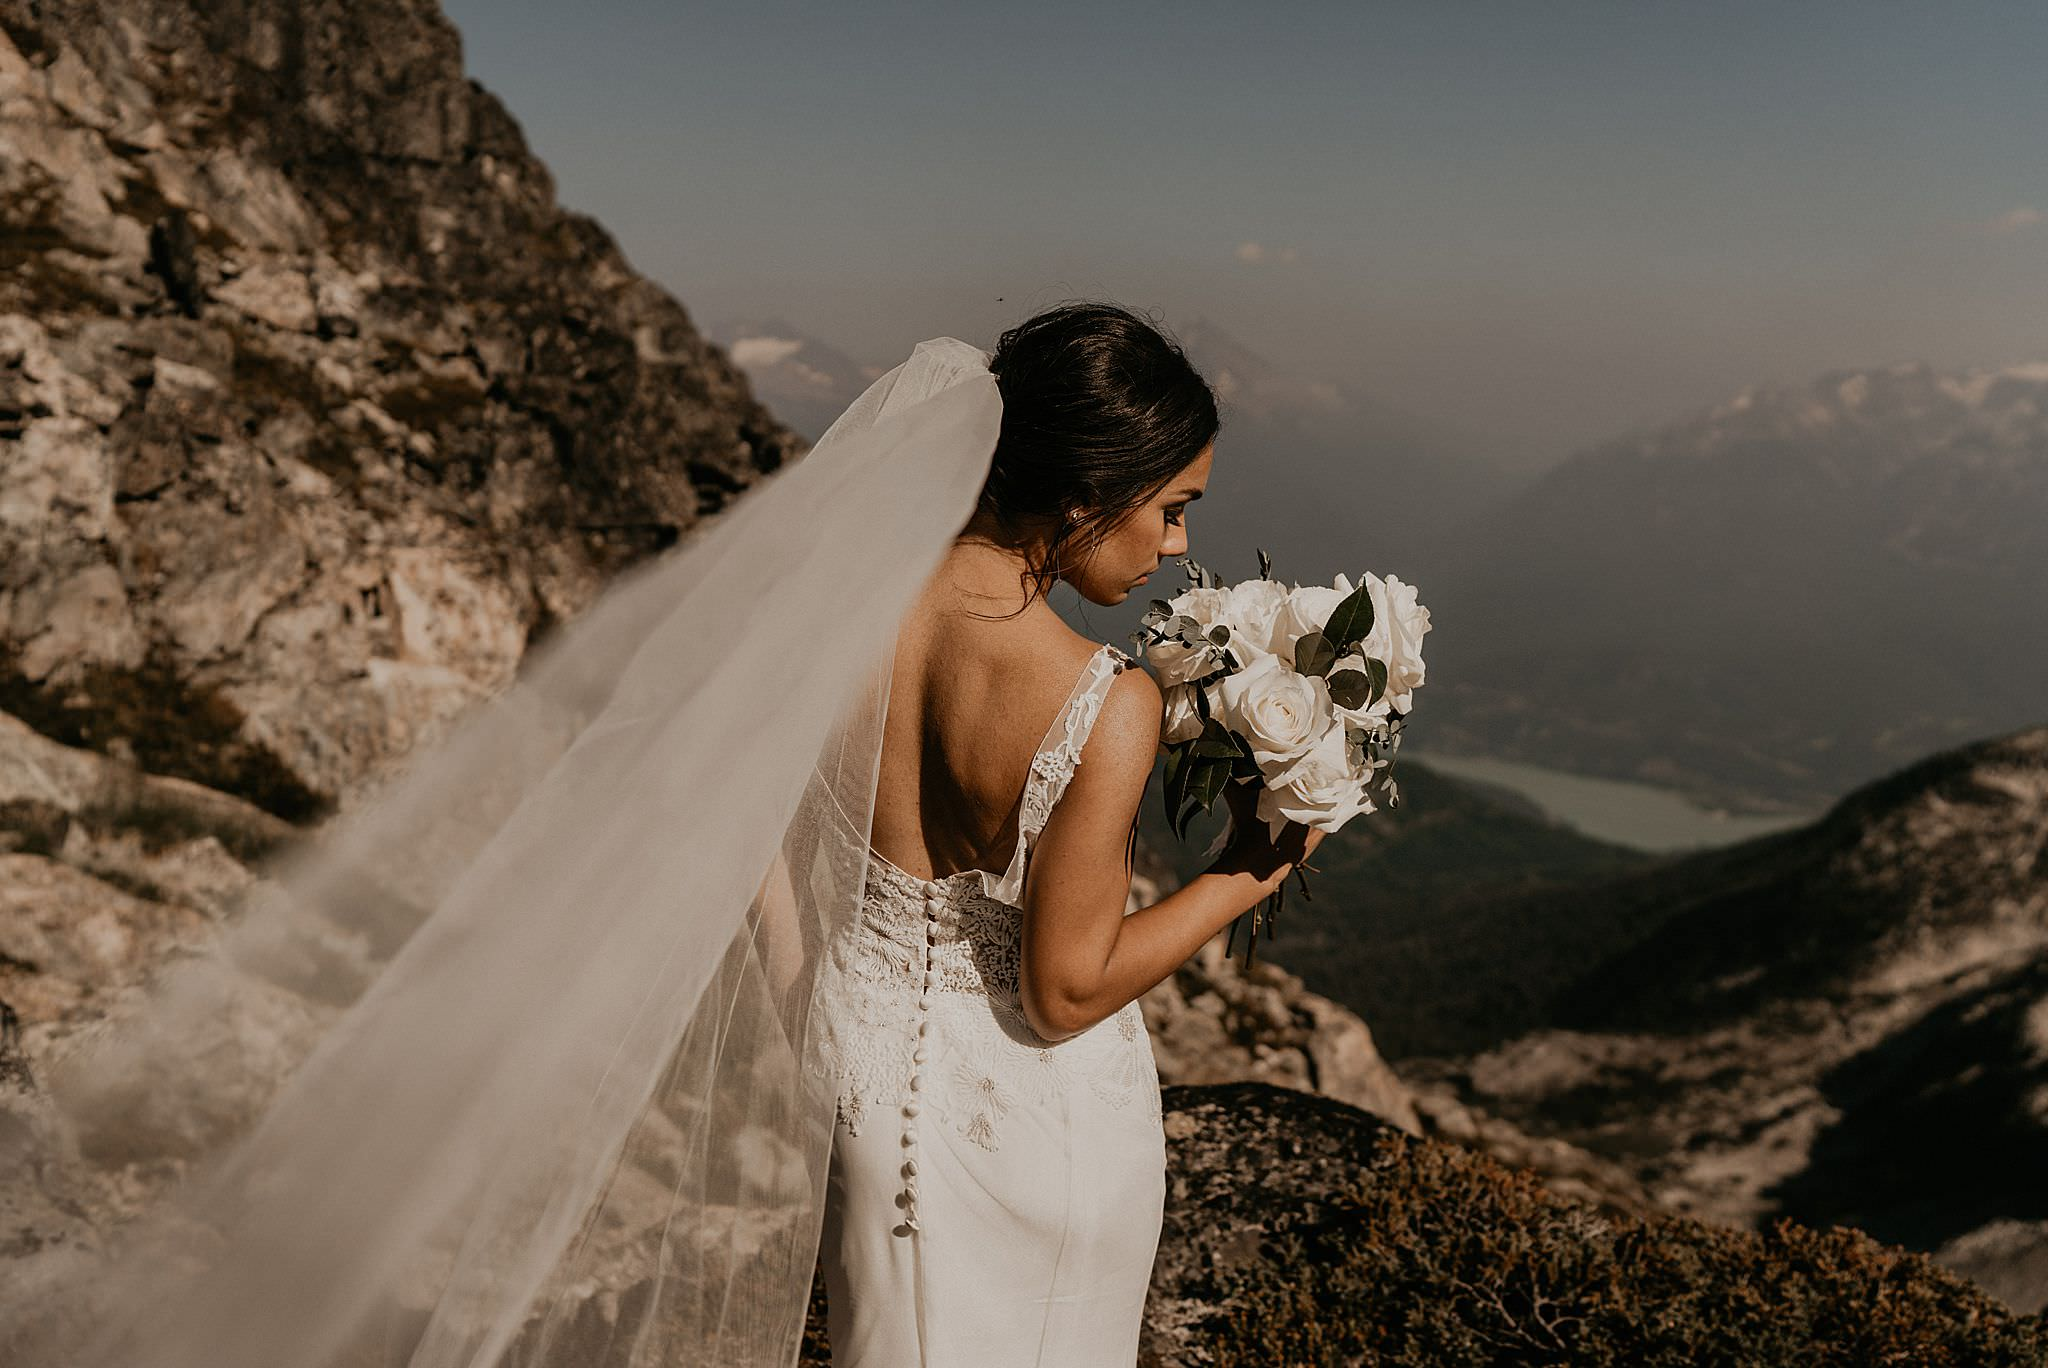 whistler-mountain-helicopter-elopement-wedding_0095.jpg